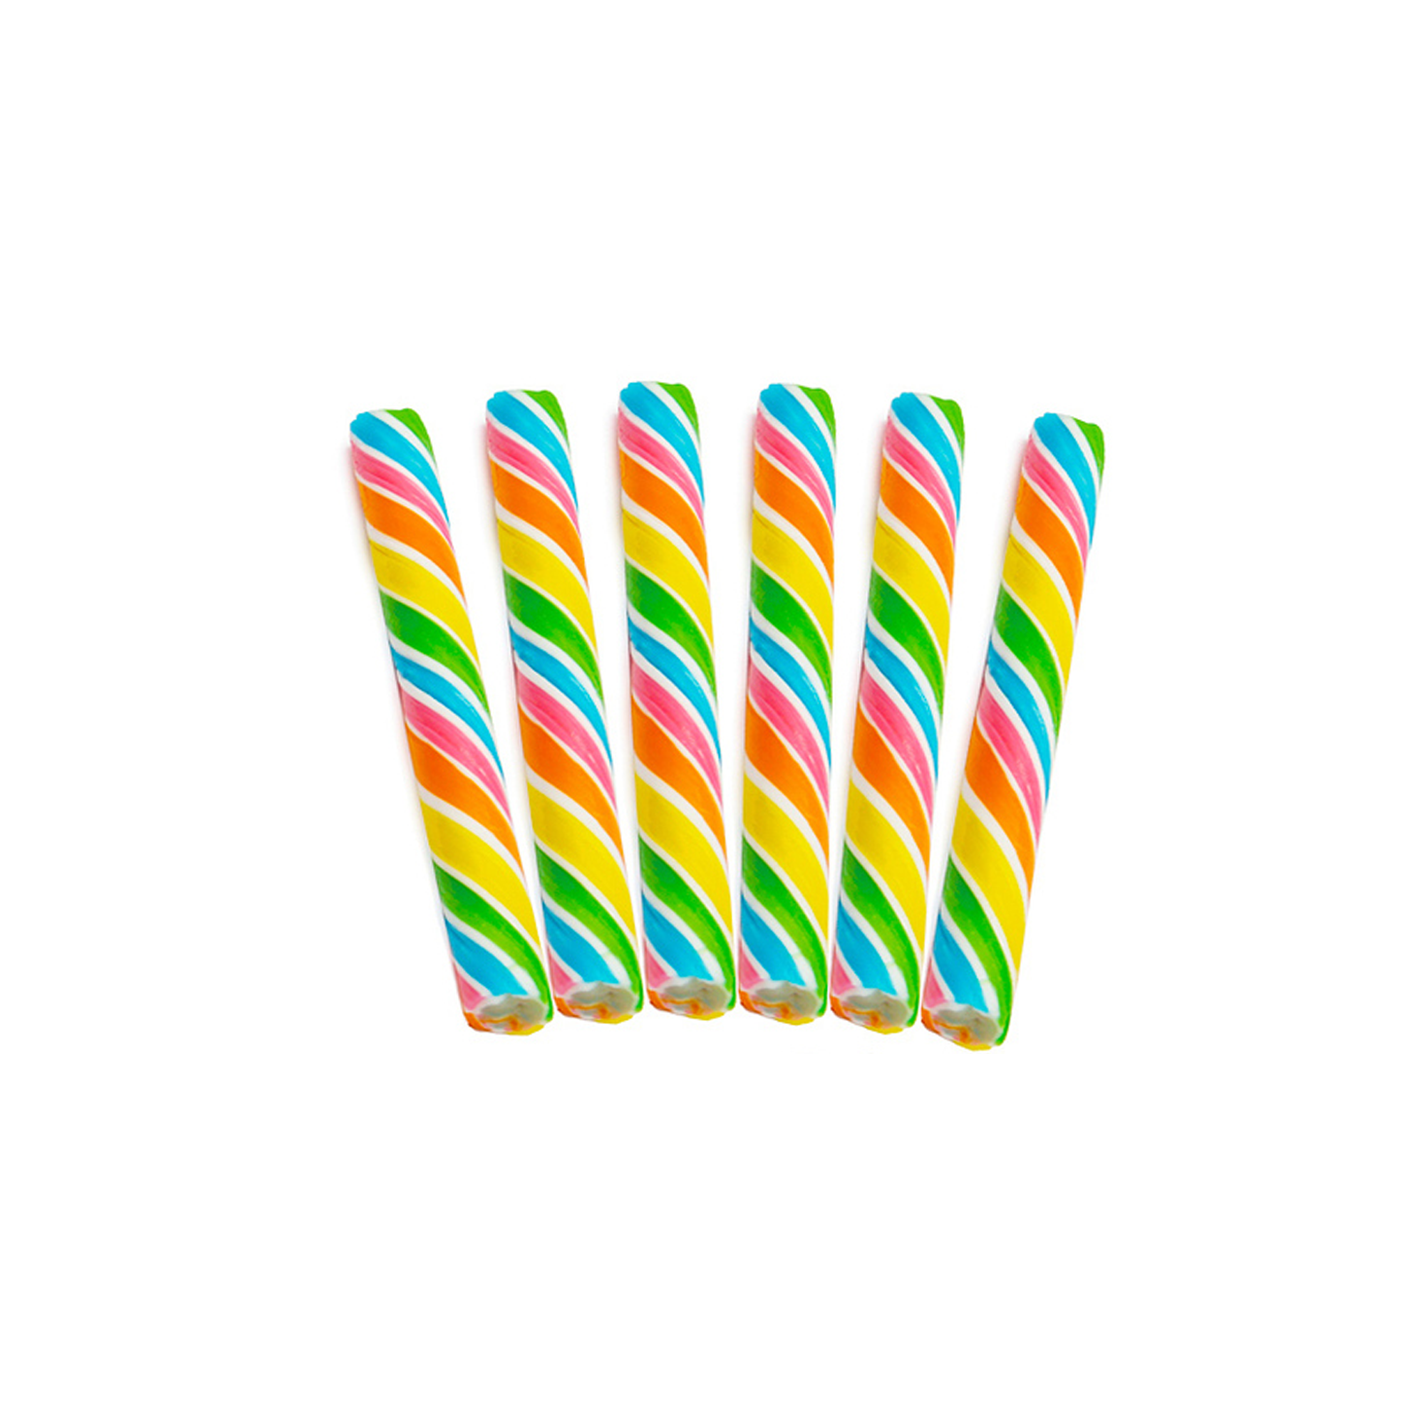 Rainbow Sweet Spindles Hard Candy Sticks - Sweet Layer Cake